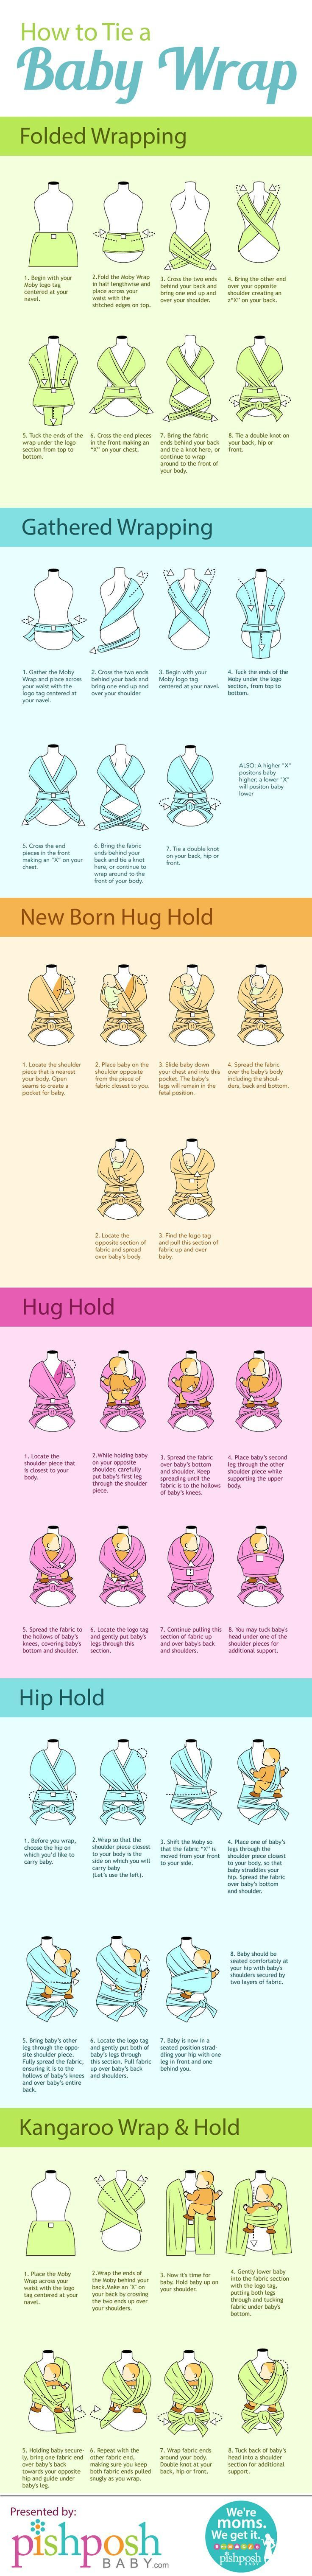 They say holding a baby in your arms is a maternal instinct; one that comes to you as soon as your baby is born... Tips for baby wrap, newborn tips.